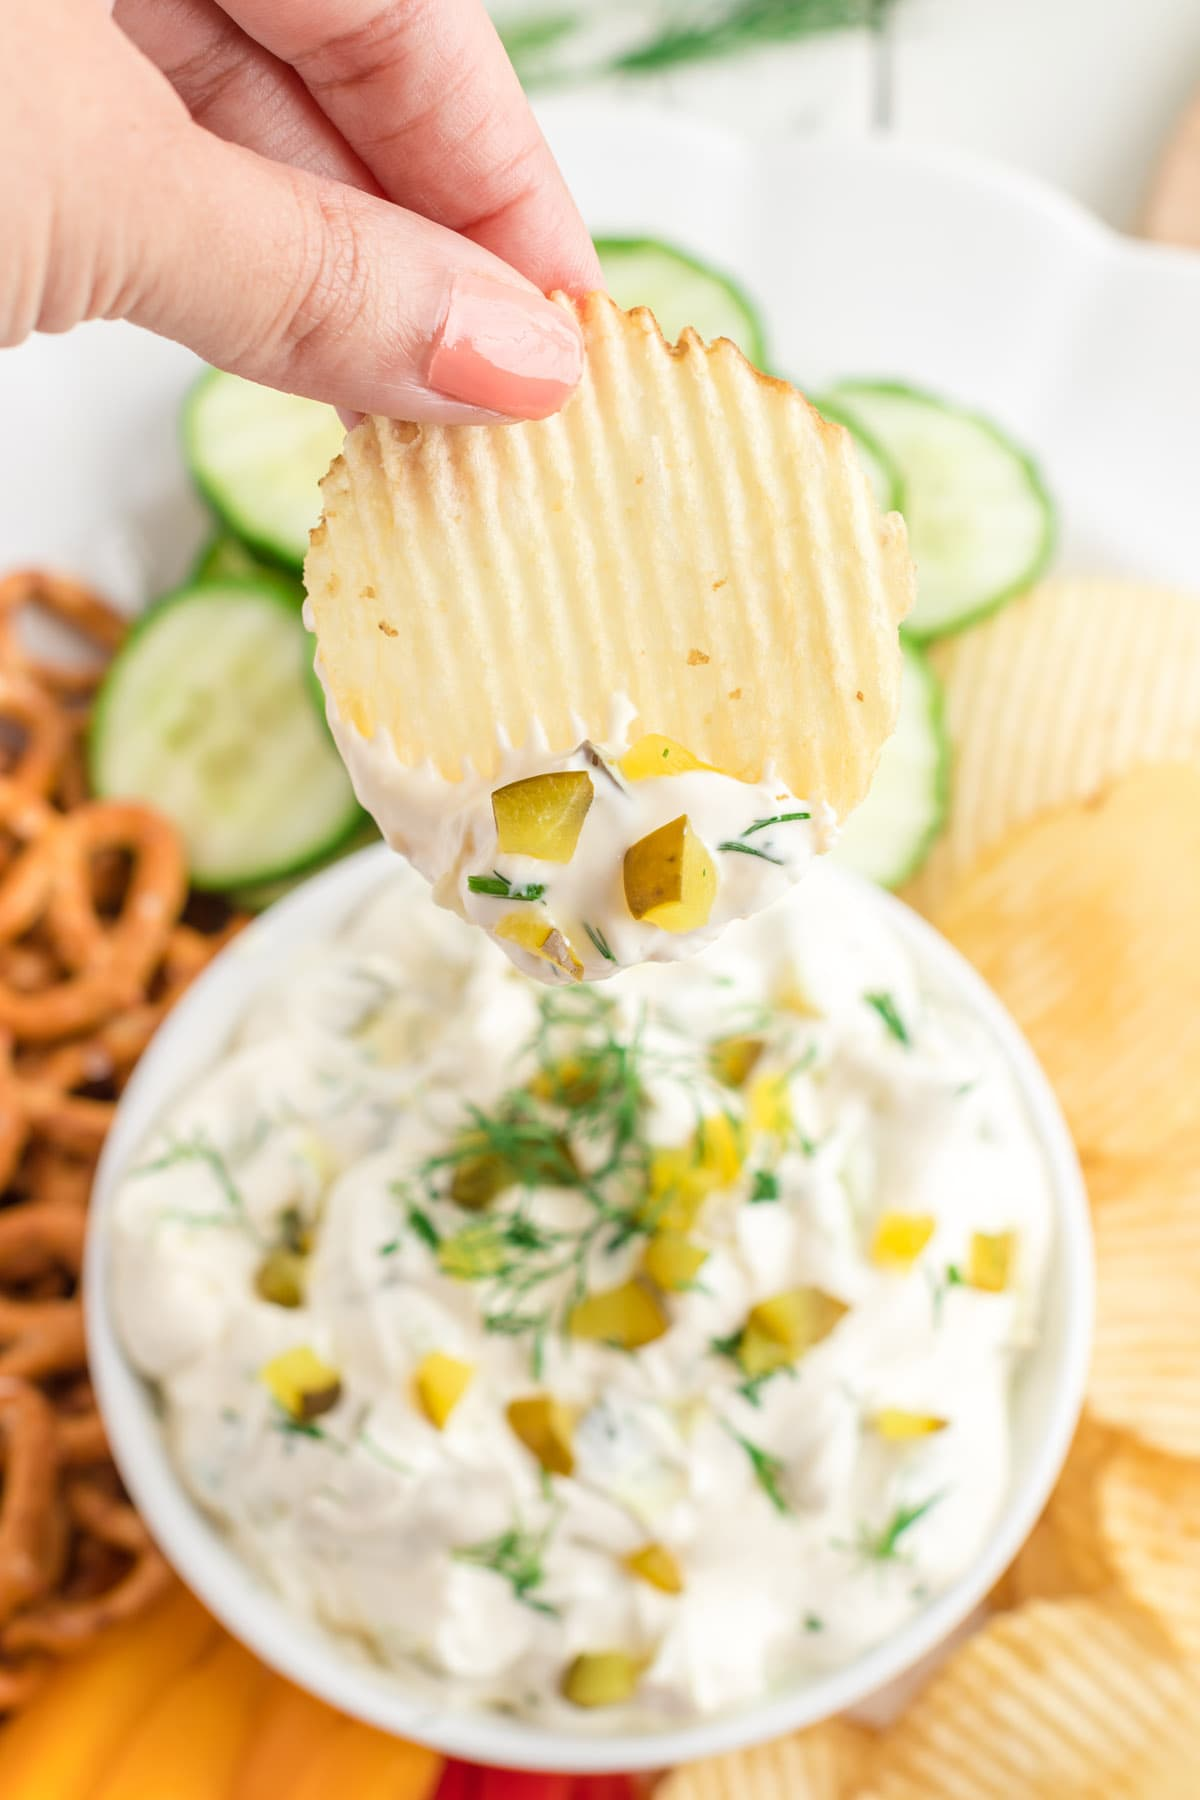 chips dipped into the dip